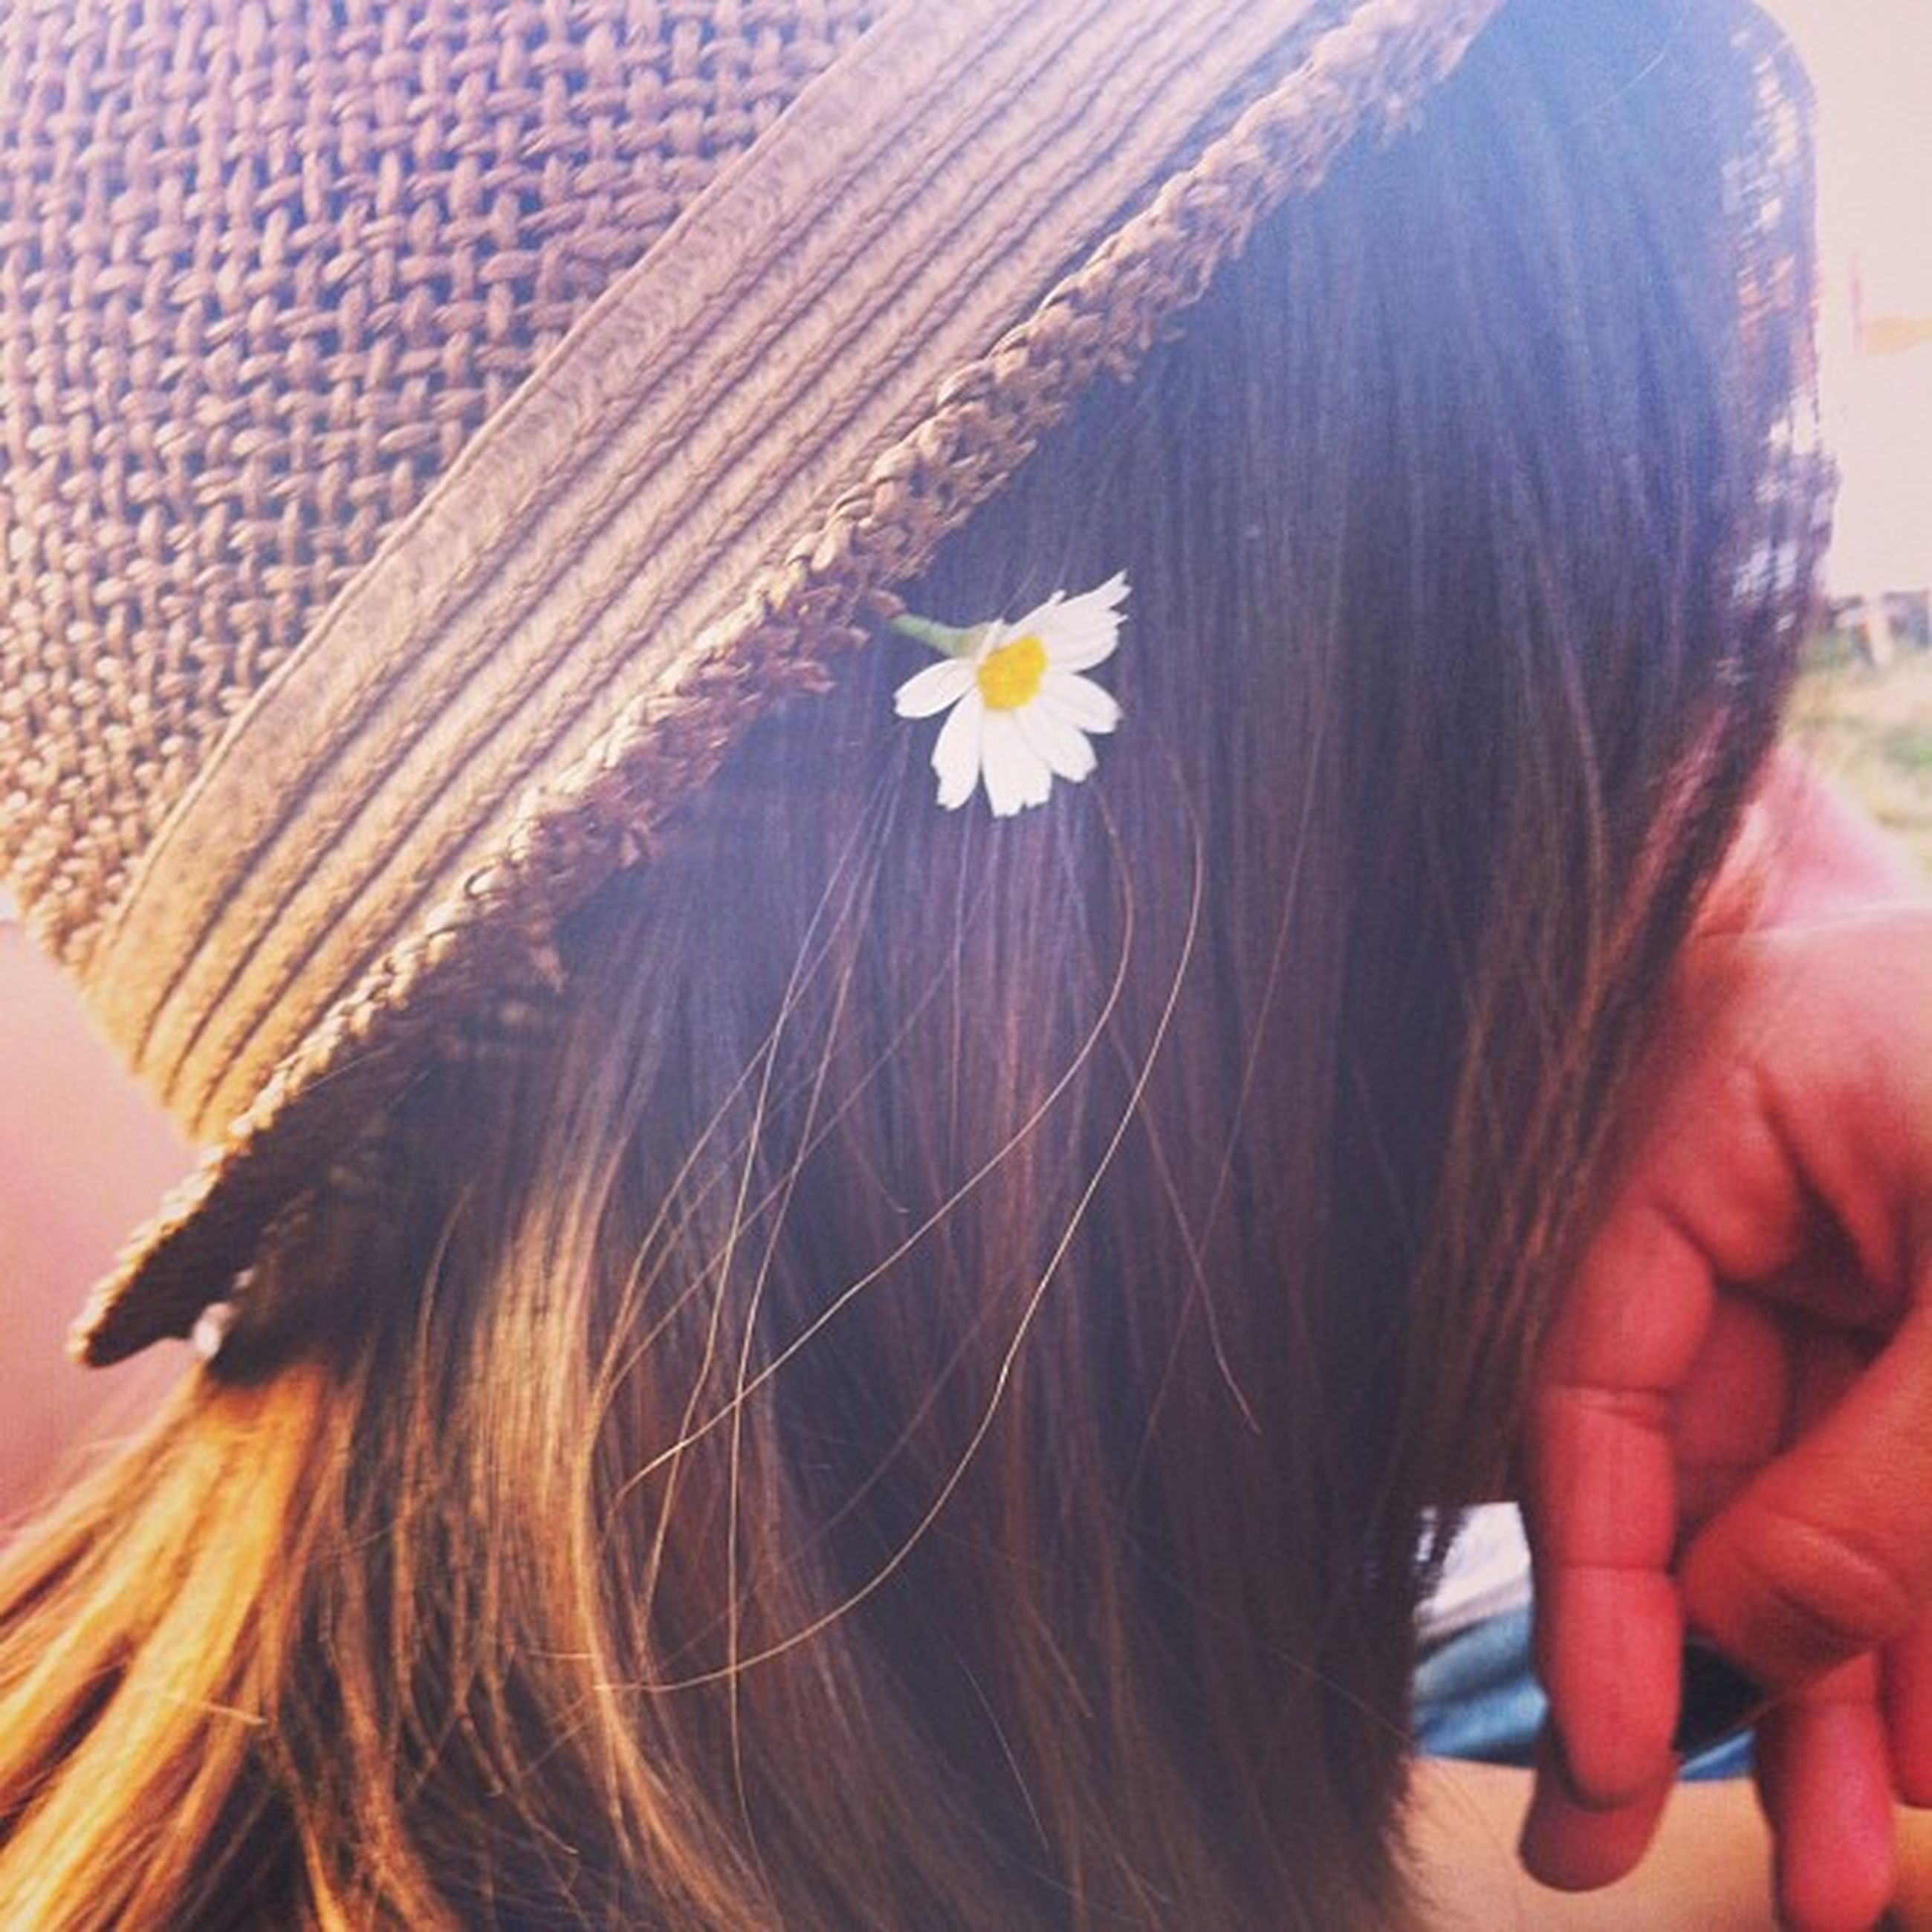 flower, person, fragility, petal, flower head, freshness, holding, close-up, lifestyles, part of, focus on foreground, leisure activity, indoors, cropped, long hair, headshot